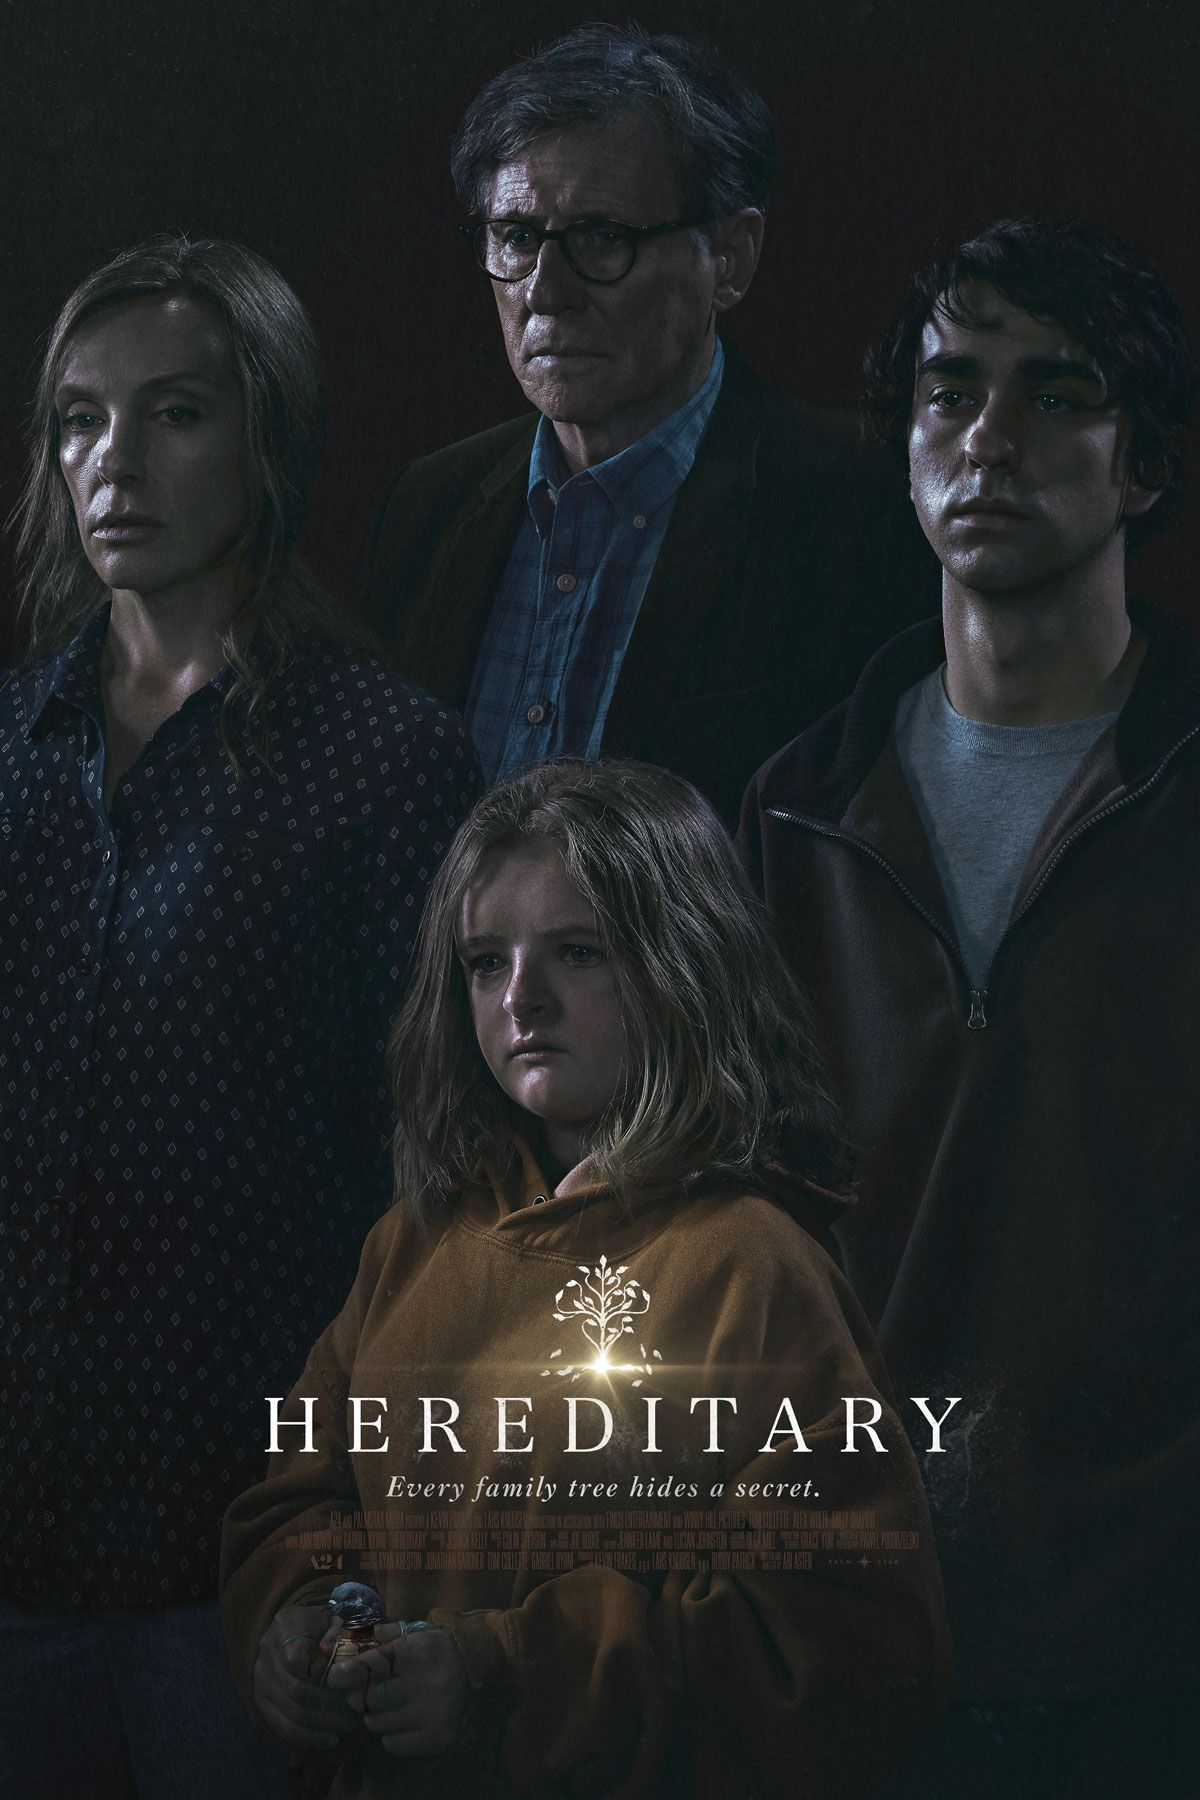 Hereditary Das Vermachtnis In 2019 Oh The Horror Streaming